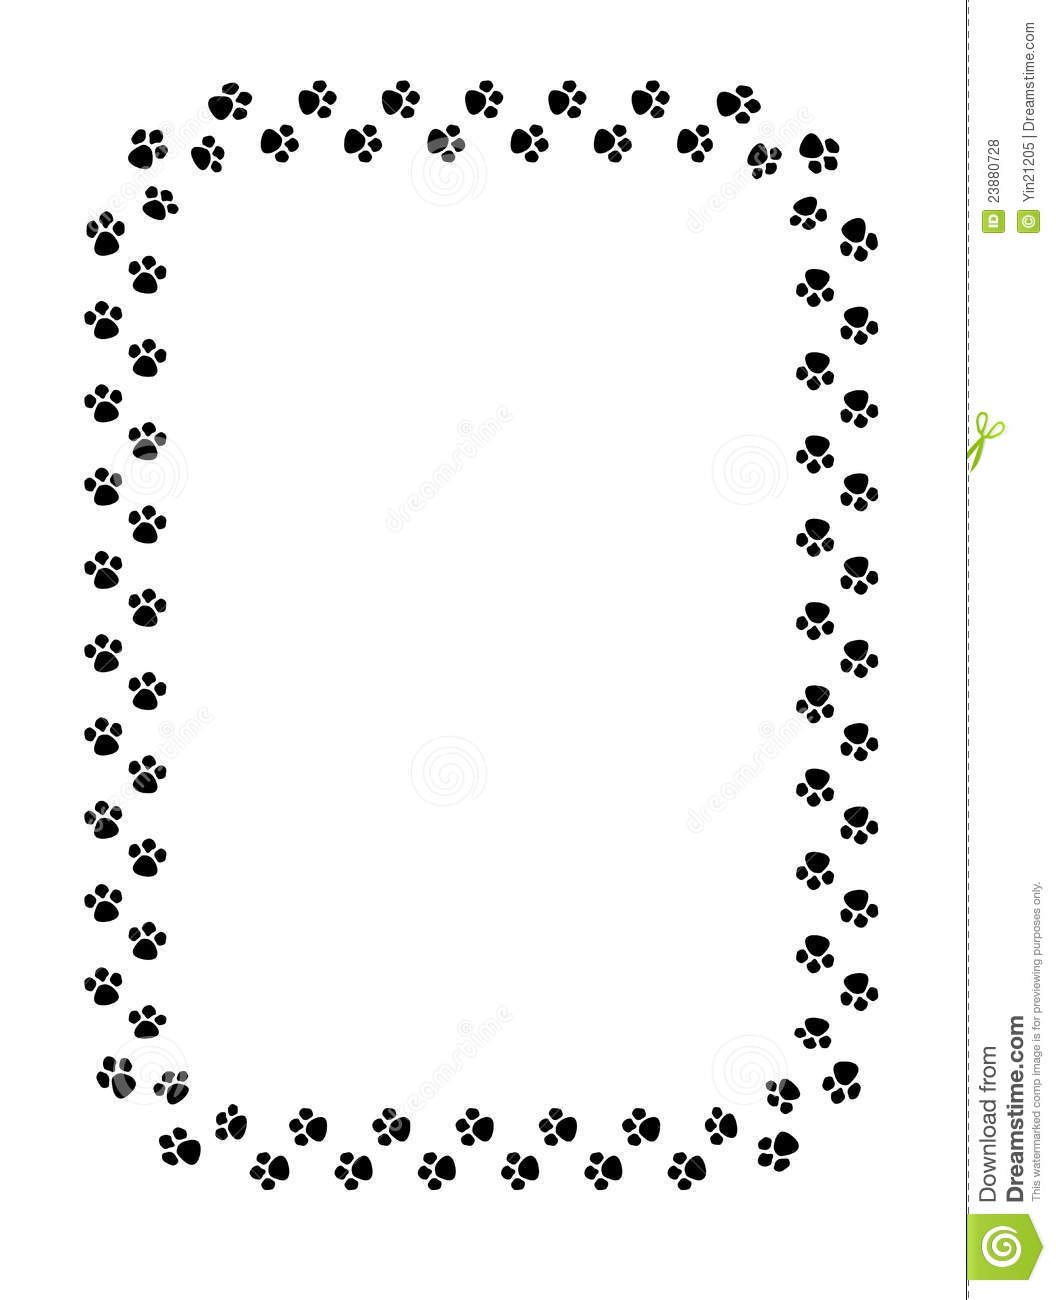 Paw Prints Border Stock Vector Illustration Of Frame